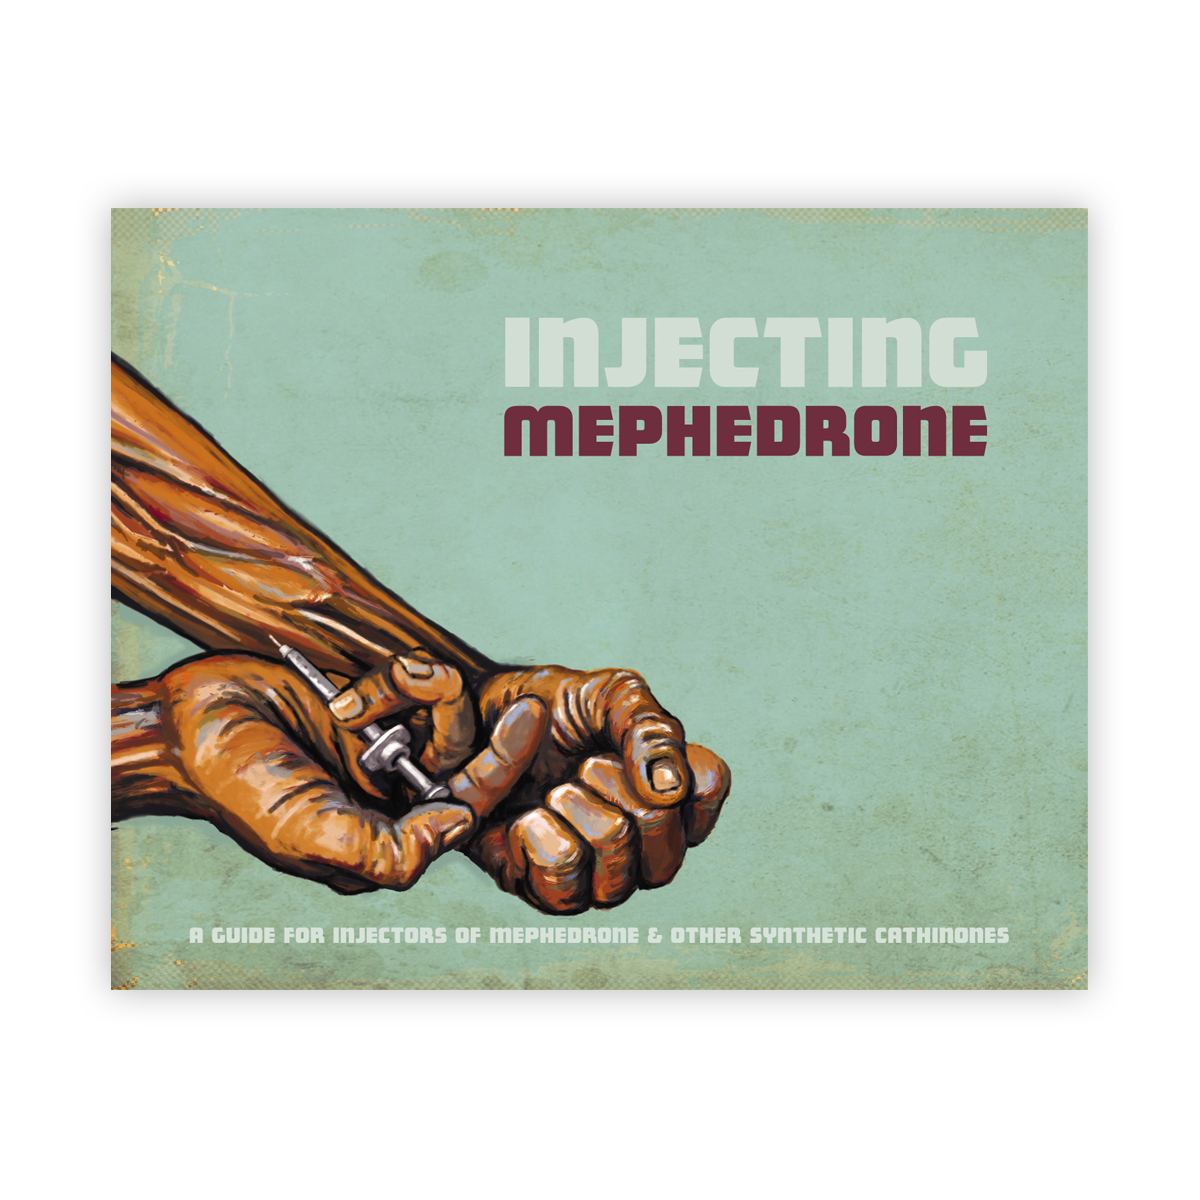 Injecting Mephedrone